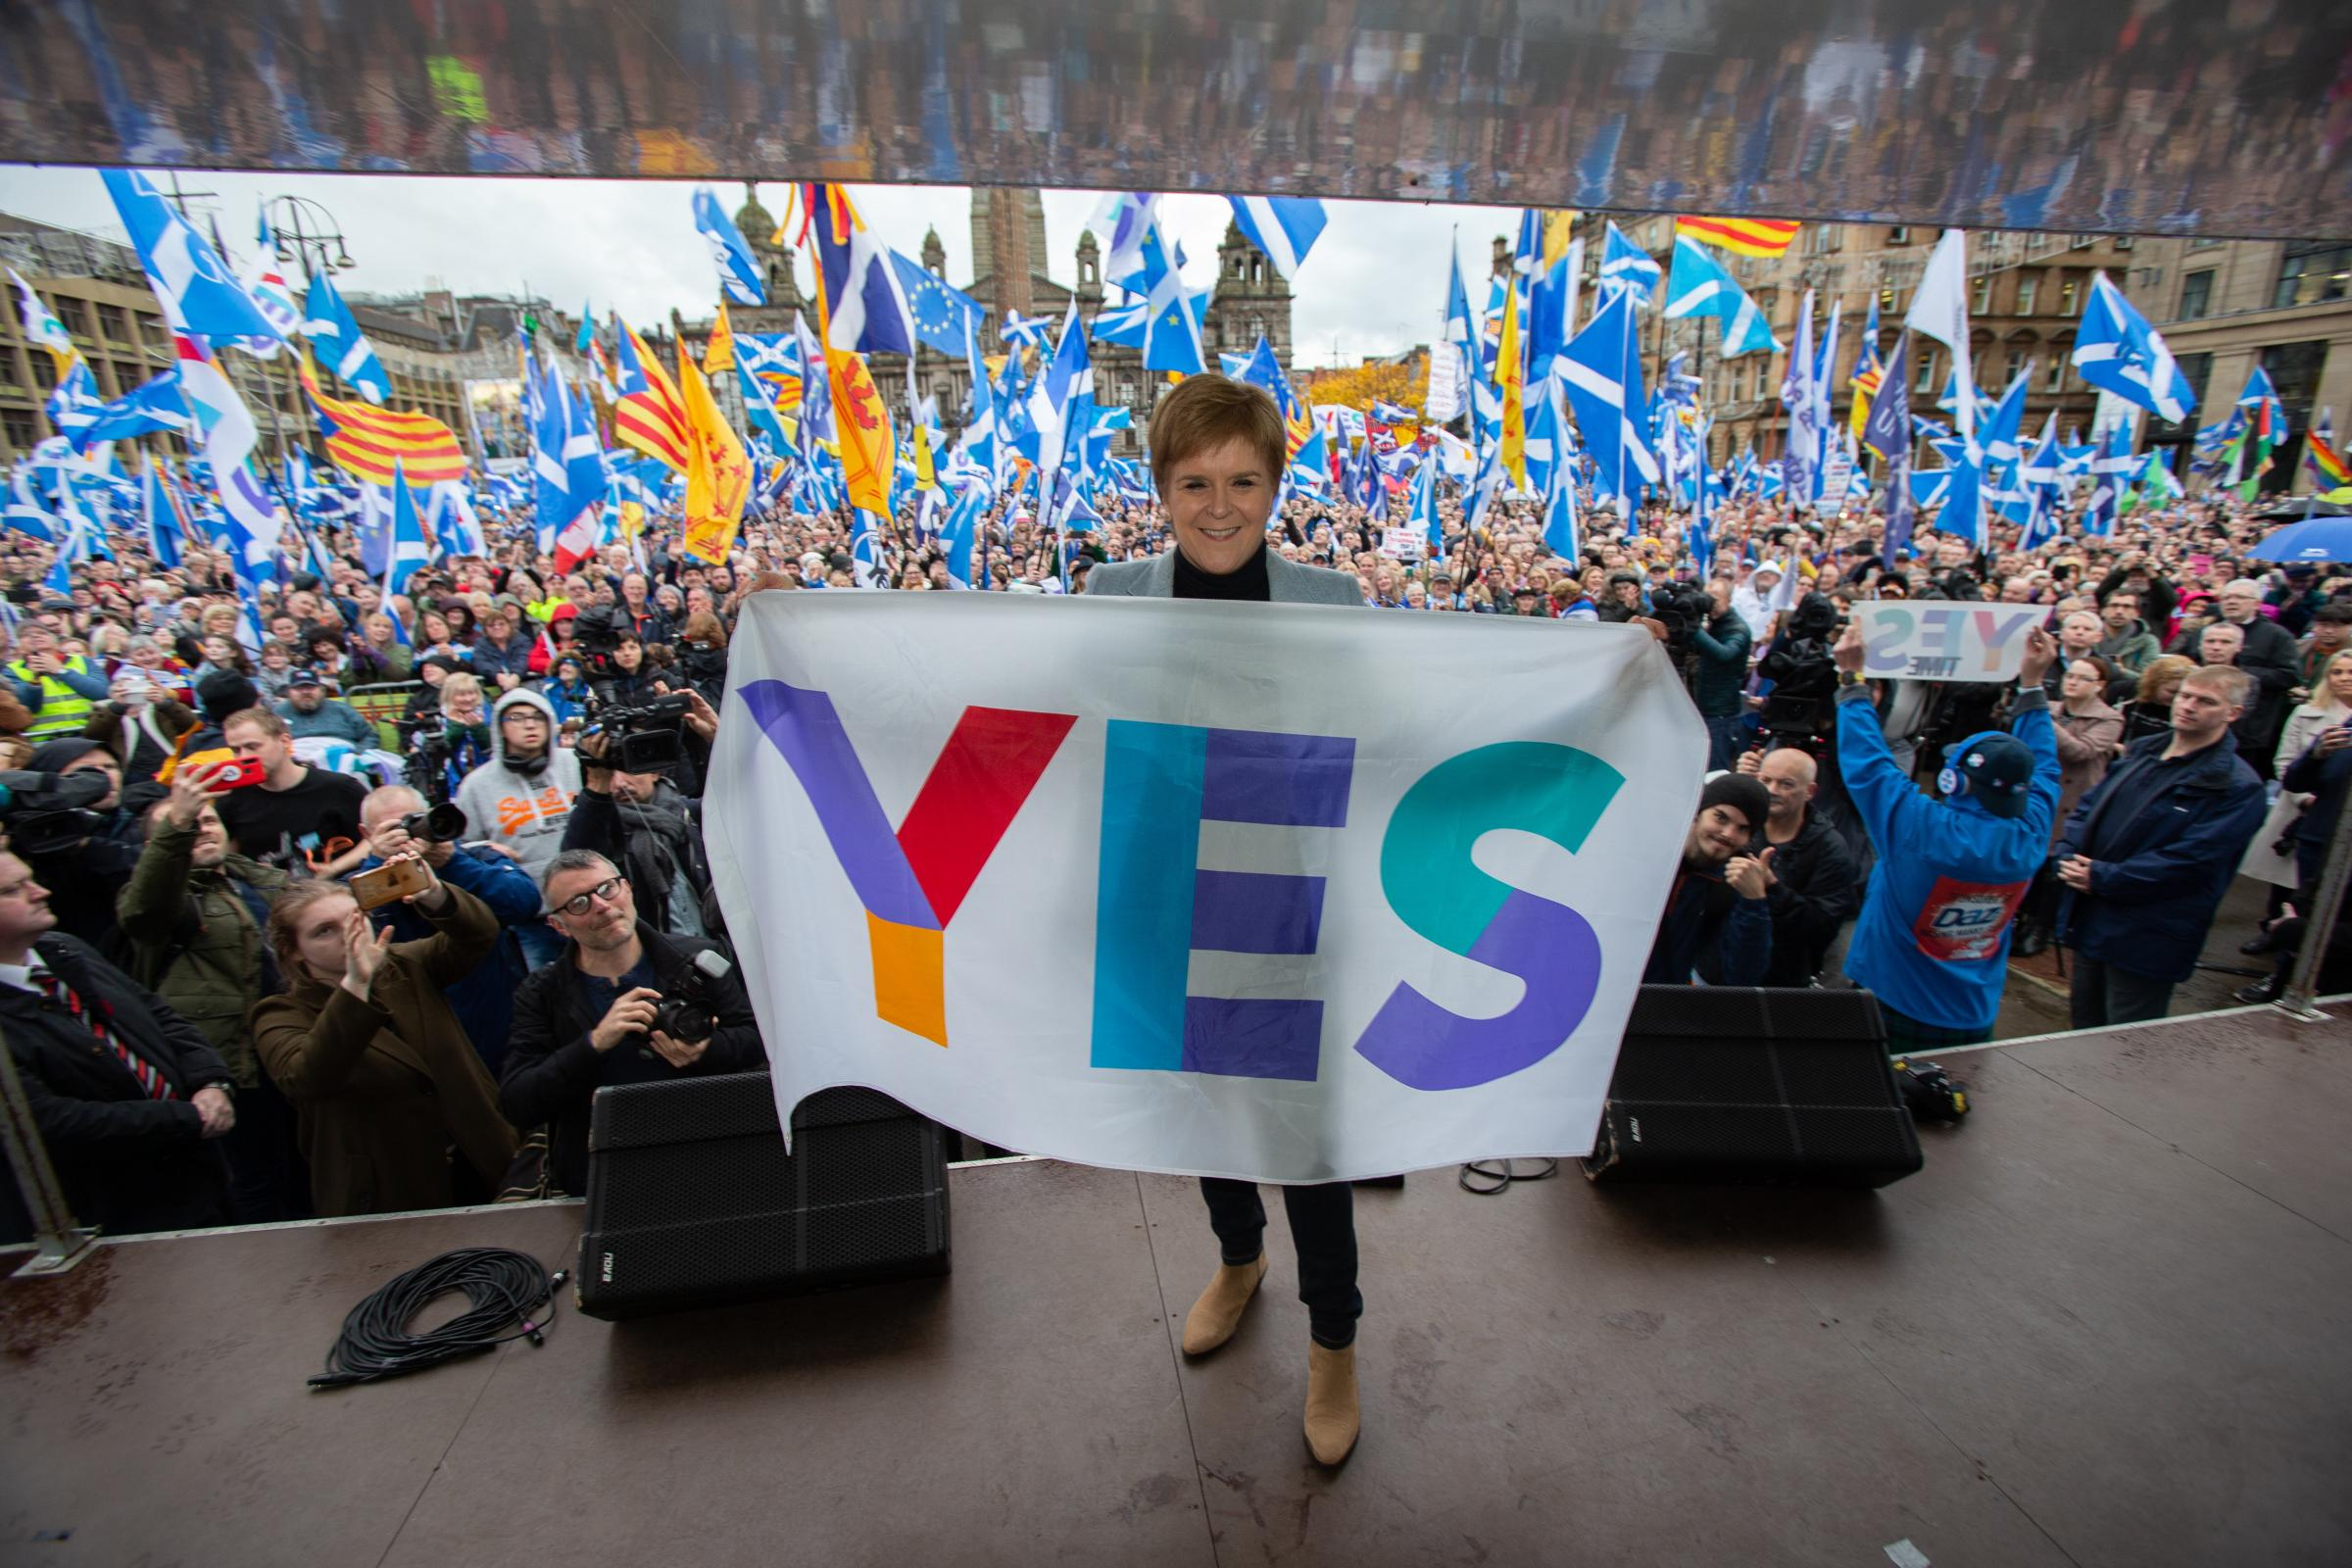 Nicola Sturgeon tells Glasgow crowds Scotland's future 'must be in our own hands'